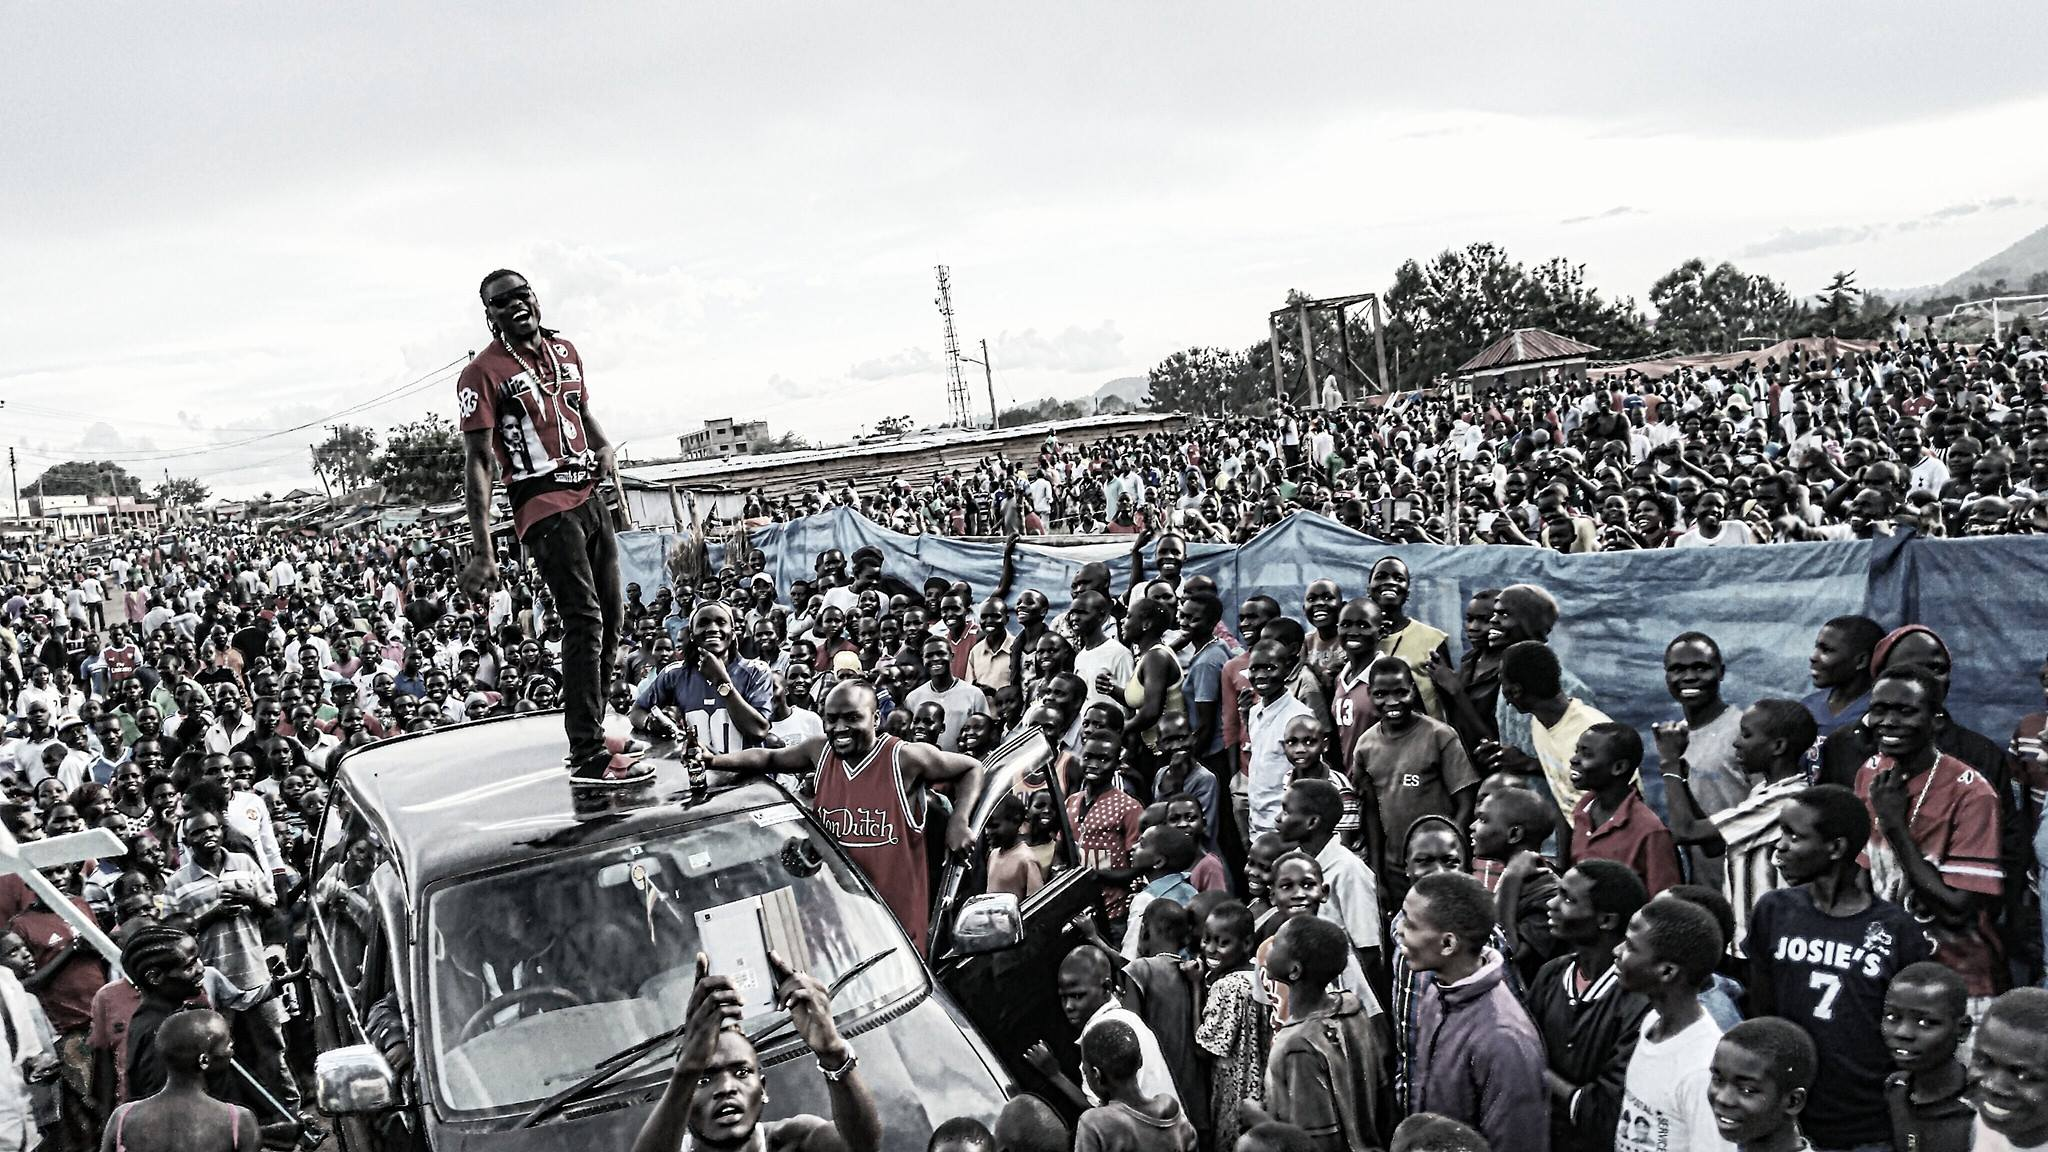 Pallaso stands on top of a car in the West Nile region